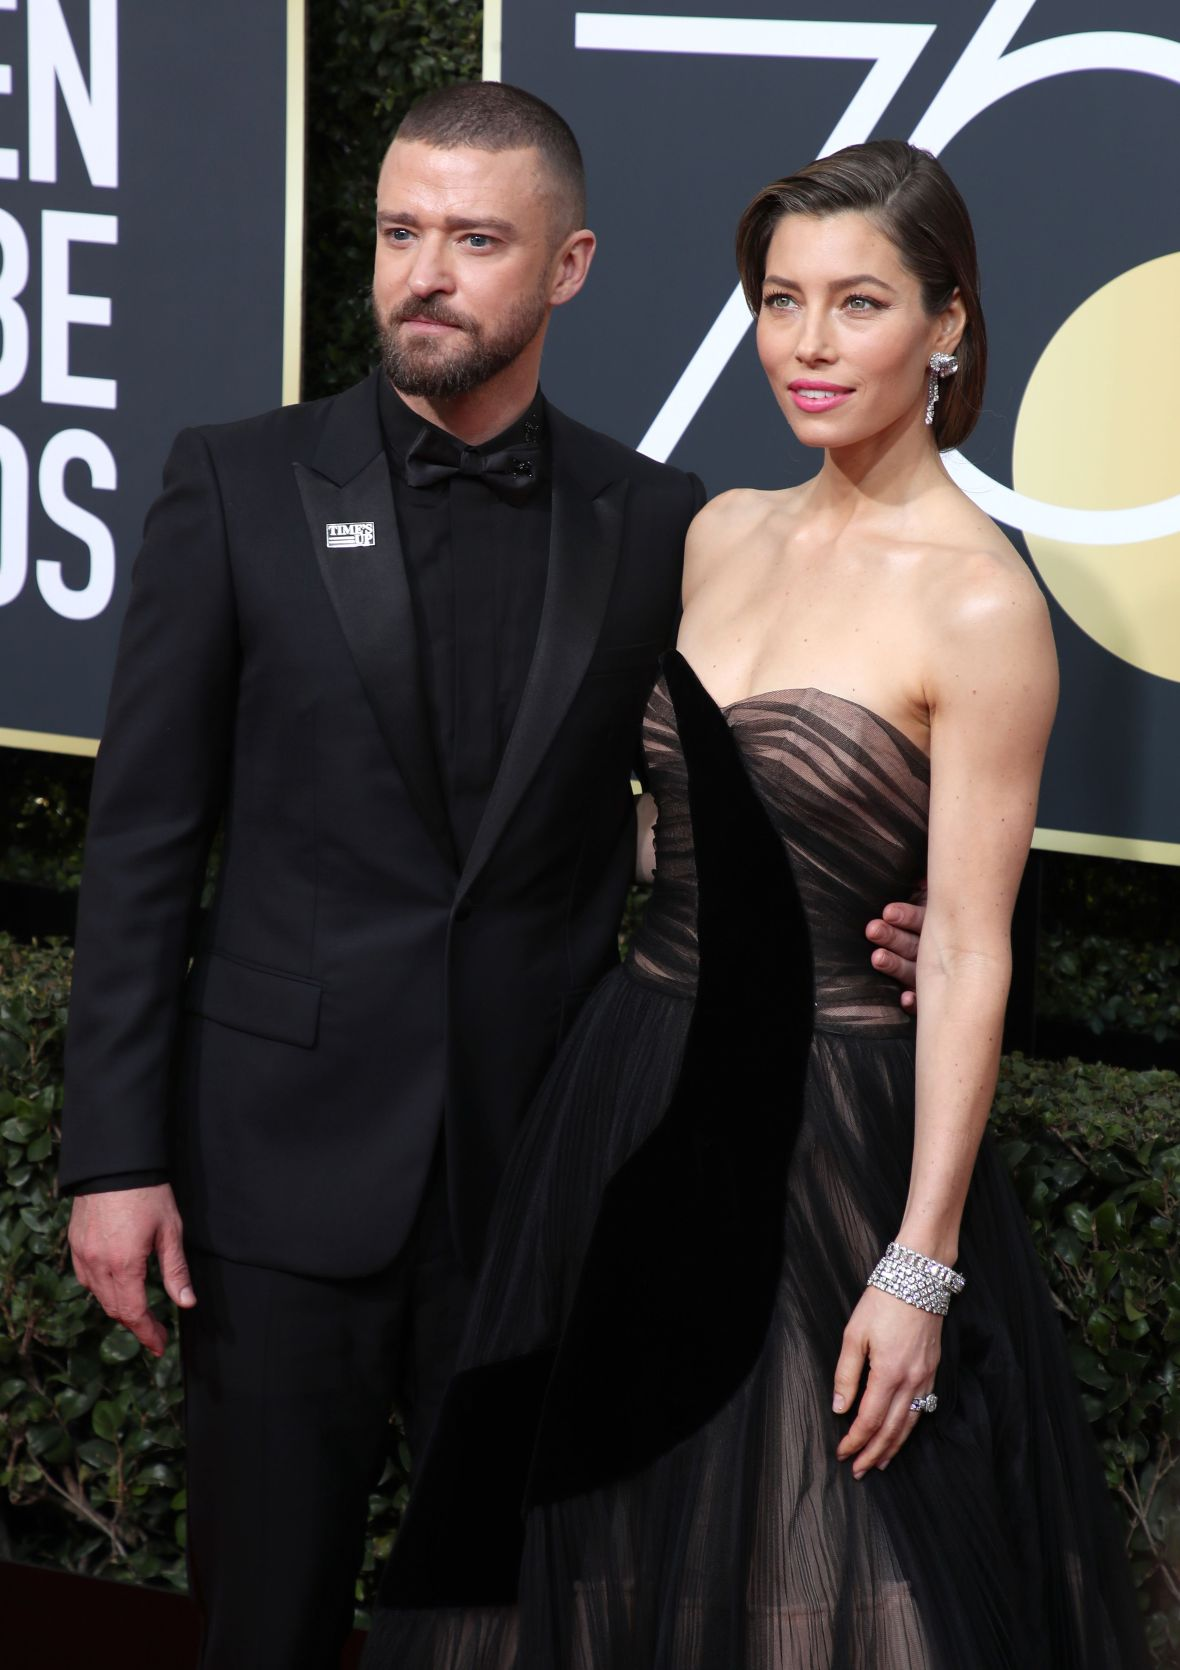 Justin Timberlake and Jessica Biel 'Better Than Ever'